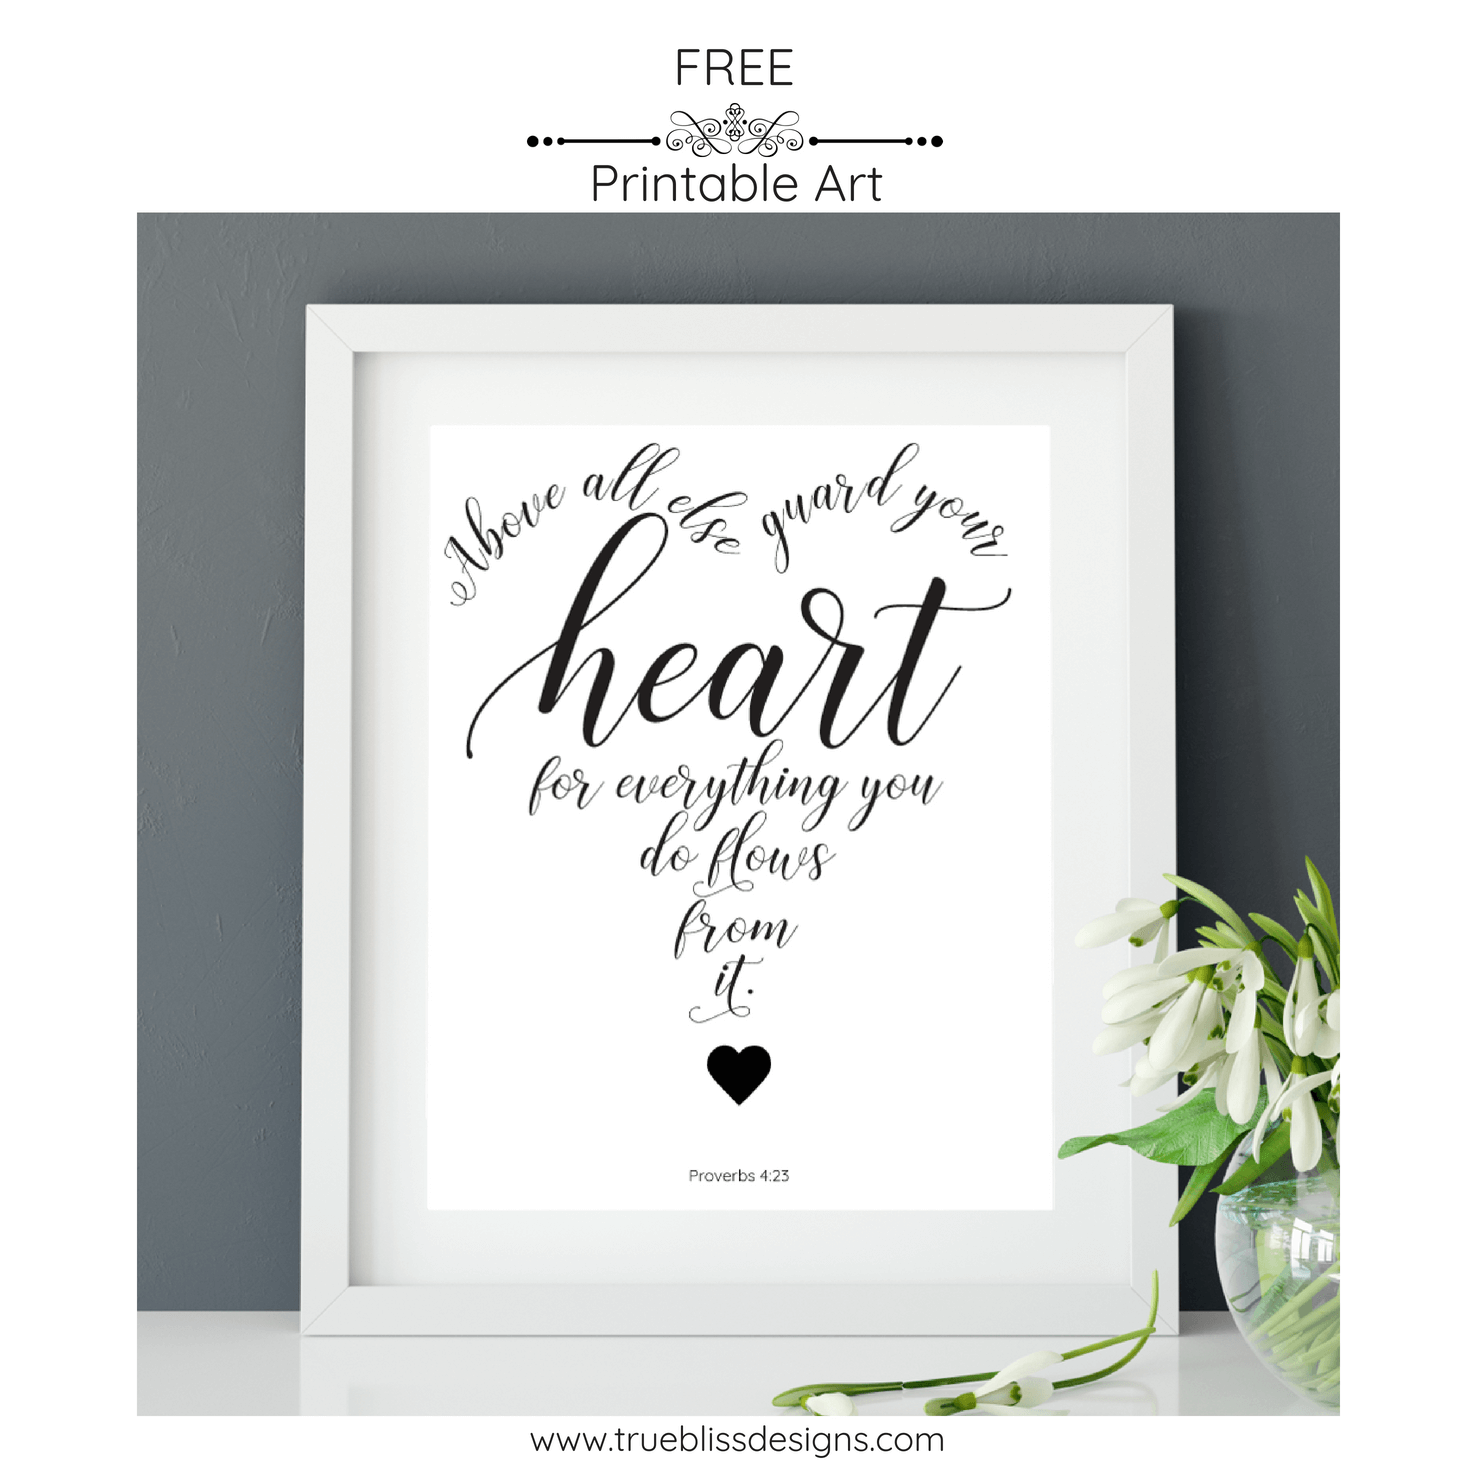 """""""Above all else guard your heart, for everything you do flows from it"""" from Proverbs 4 23 is taken from NIV Provers 4 23. This quote has been created into a free printable wall art which you can download today. More freebies at www.trueblissdesigns.com #wallart #printable #freeprintable #bibleverse #proverbs #bibleart"""